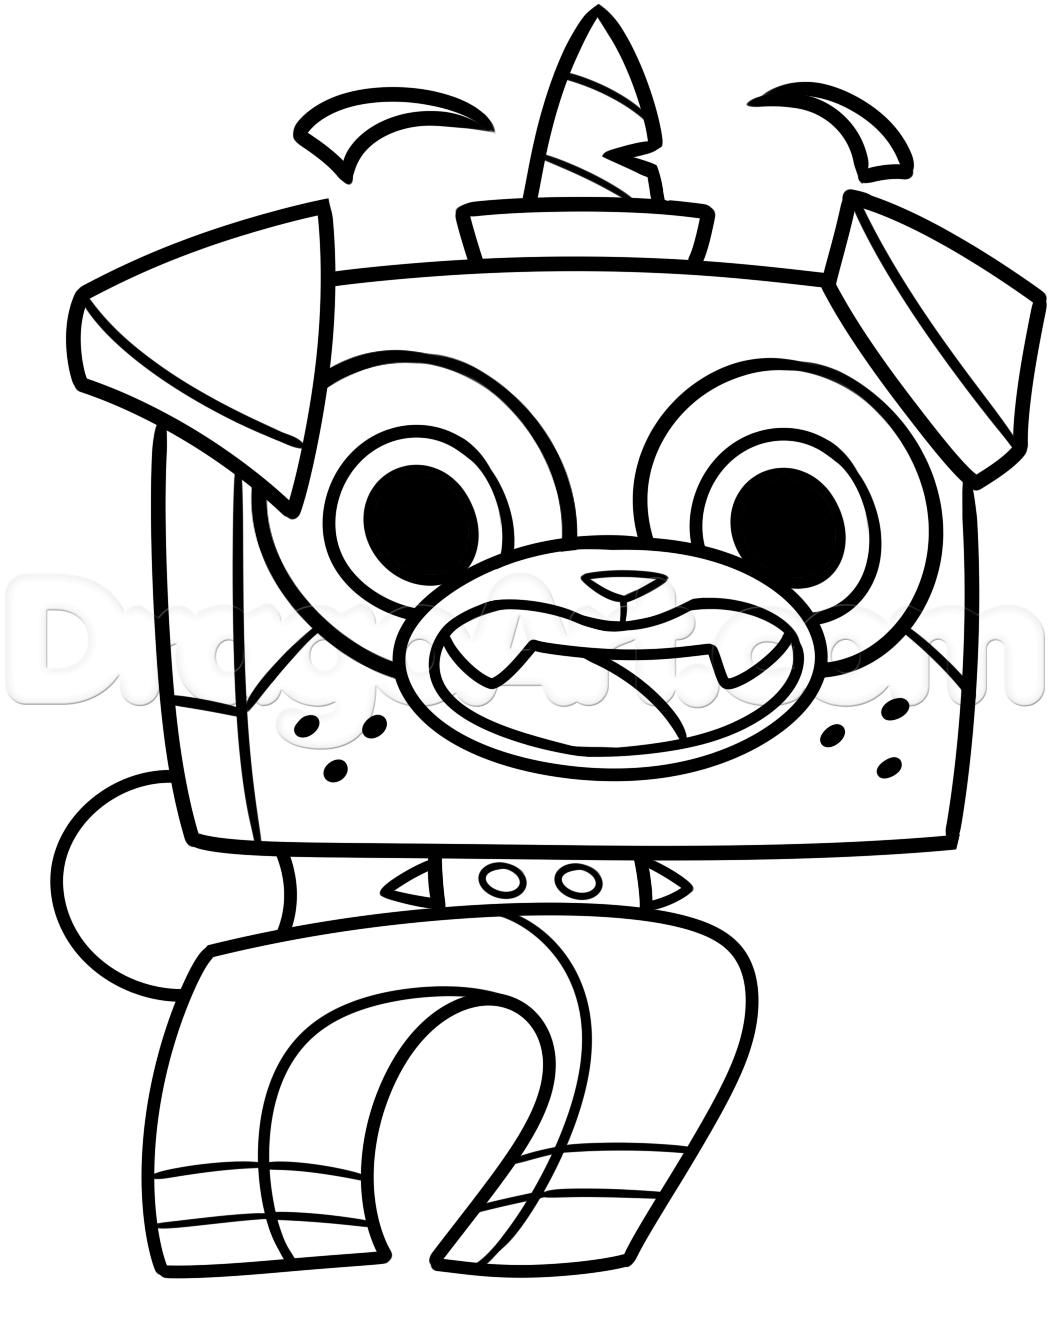 10 Coloring Page Unikitty Coloring Pages Unikitty Printable Coloring